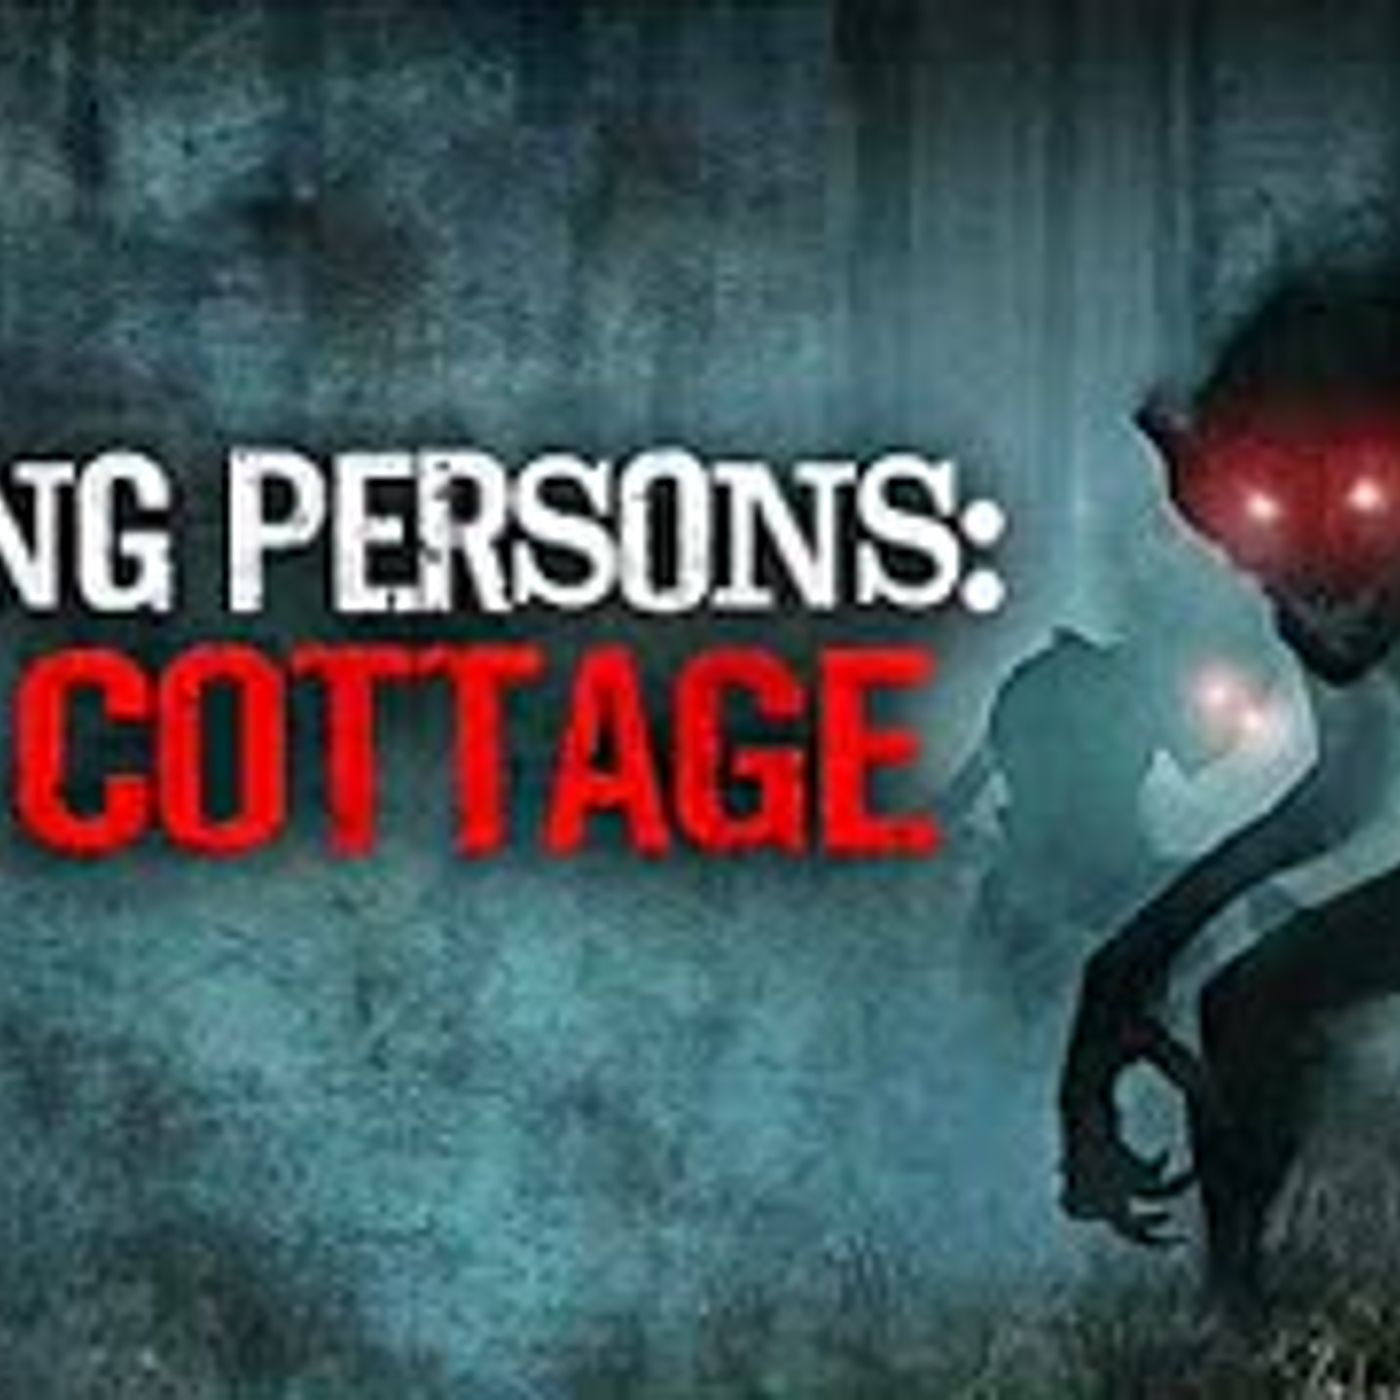 """Missing Persons: The Cottage"" Creepypasta"